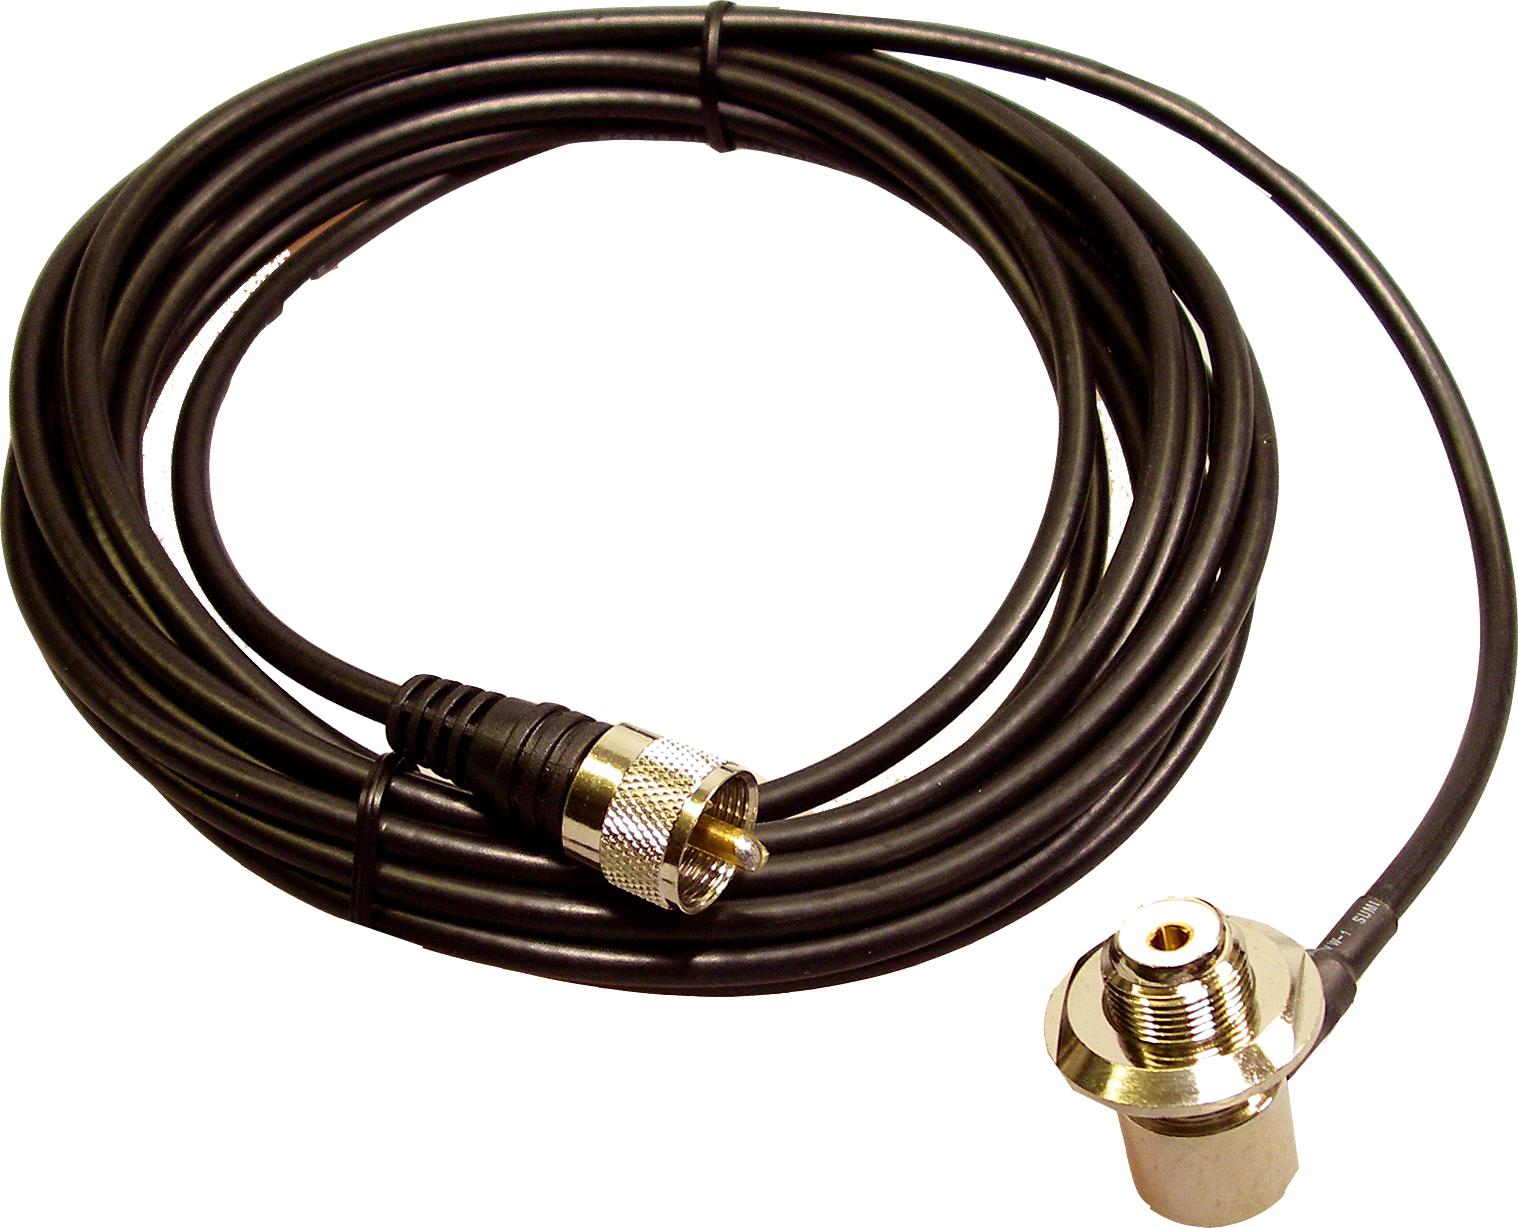 MC-ECH 4M Cable kit SO239 TO PL259